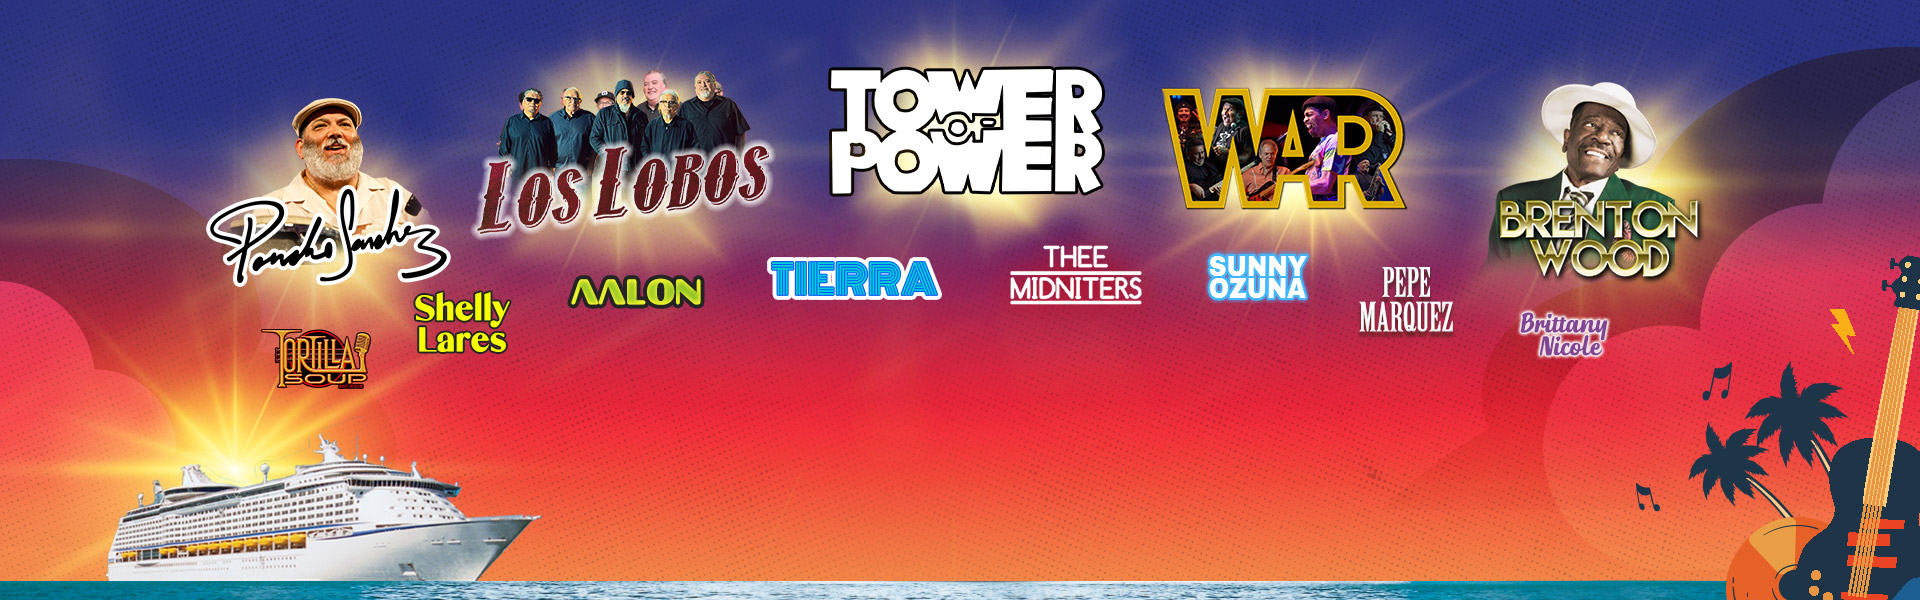 main-banner-3-no-text-2-concert-cruise-events-super-legends-cruise-2022-brenton-wood-war-tower-of-power-los-lobos-pancho-lopez